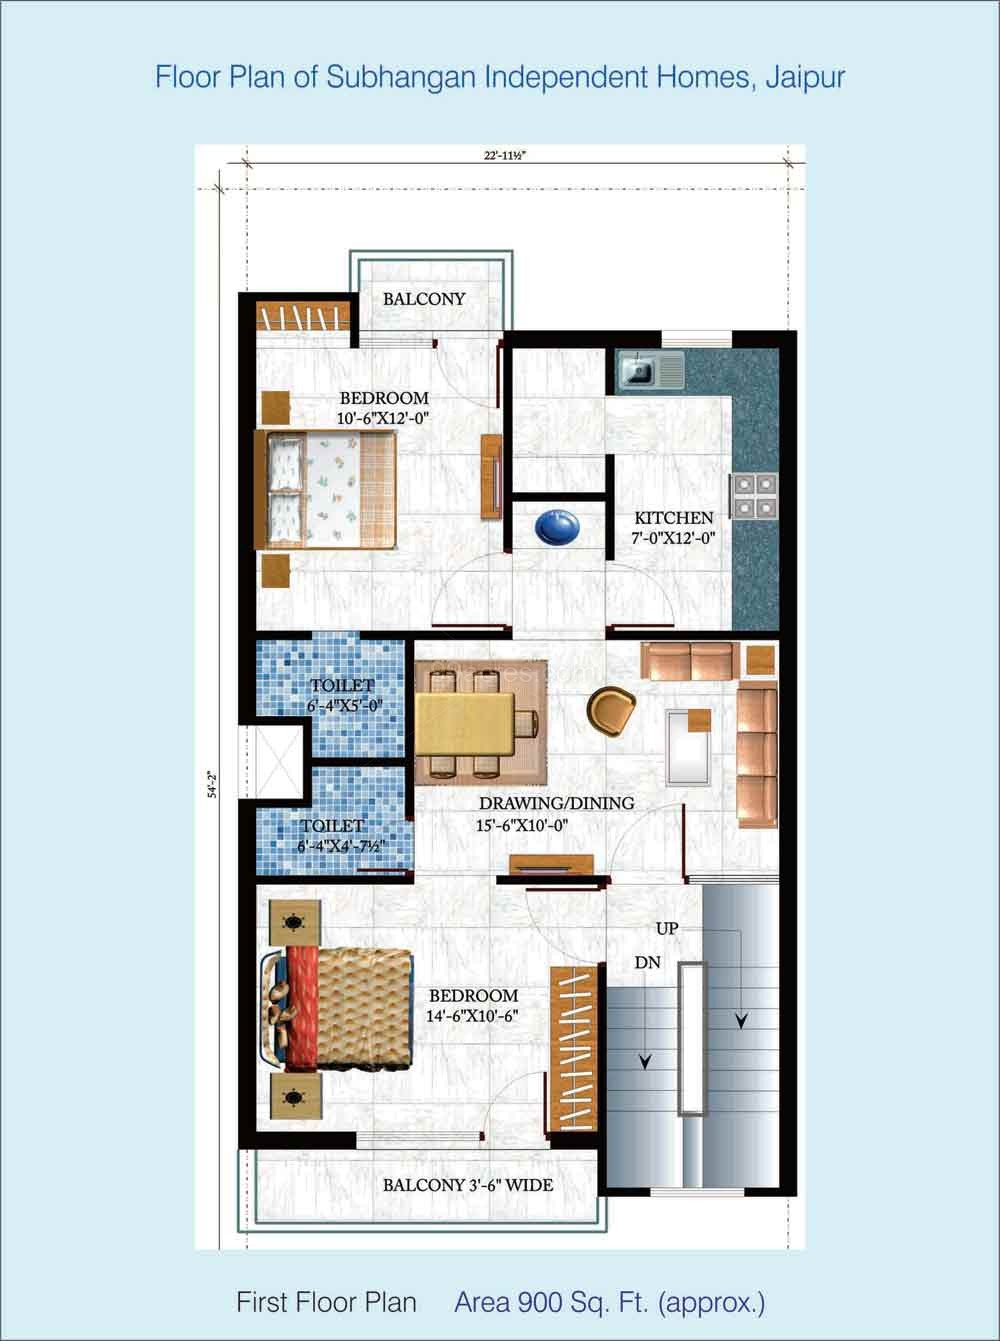 Omaxe Ltd Omaxe City Floor Plan Omaxe City Ajmer Road Jaipur